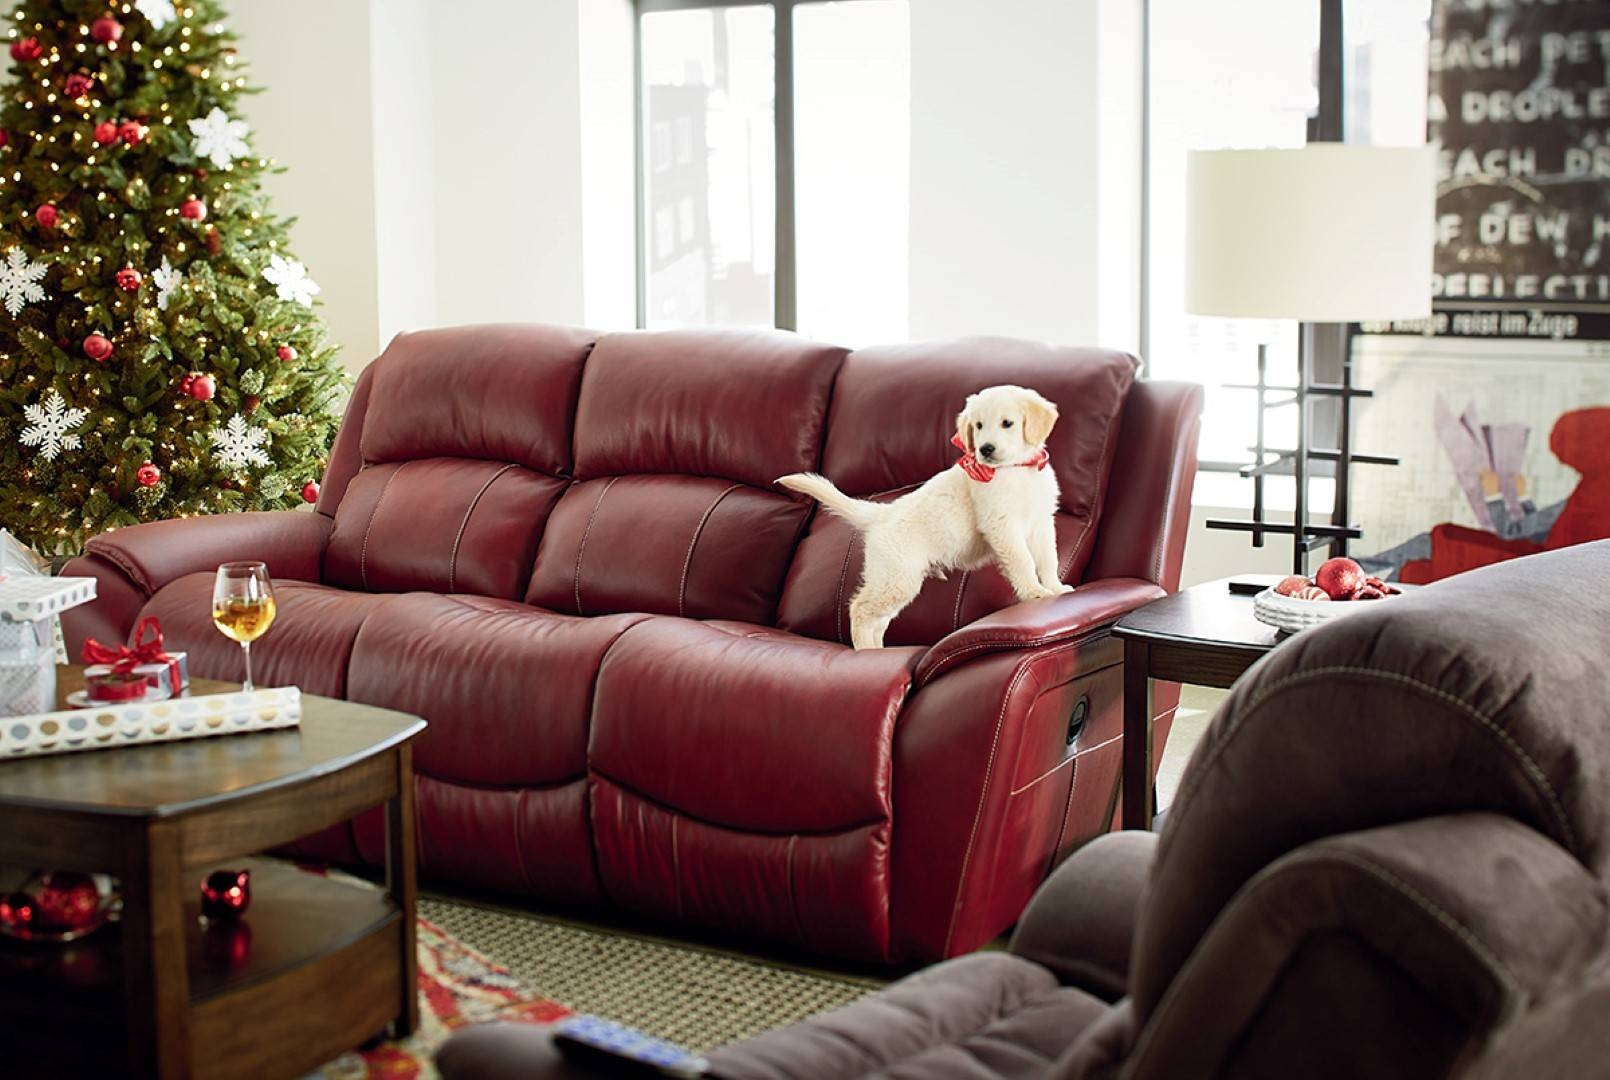 La Z Boy Barrett Reclining Sofa - Town & Country Furniture for Lazy Boy Sofas And Chairs (Image 6 of 15)